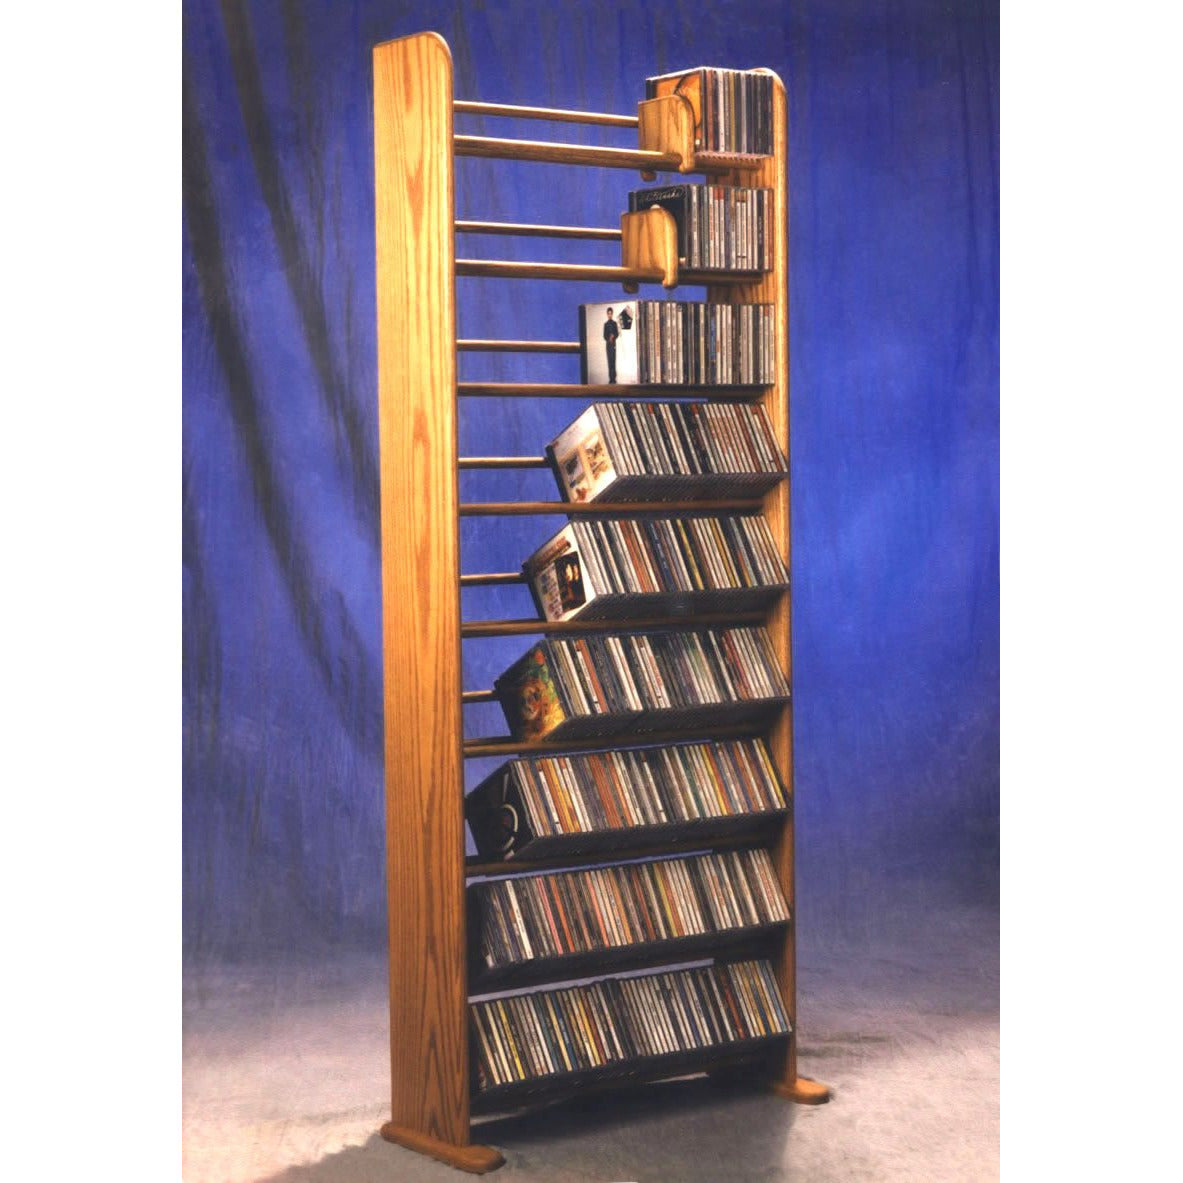 CD storage for large collections, Model 901 CD Storage Rack from Hill Wood Shed